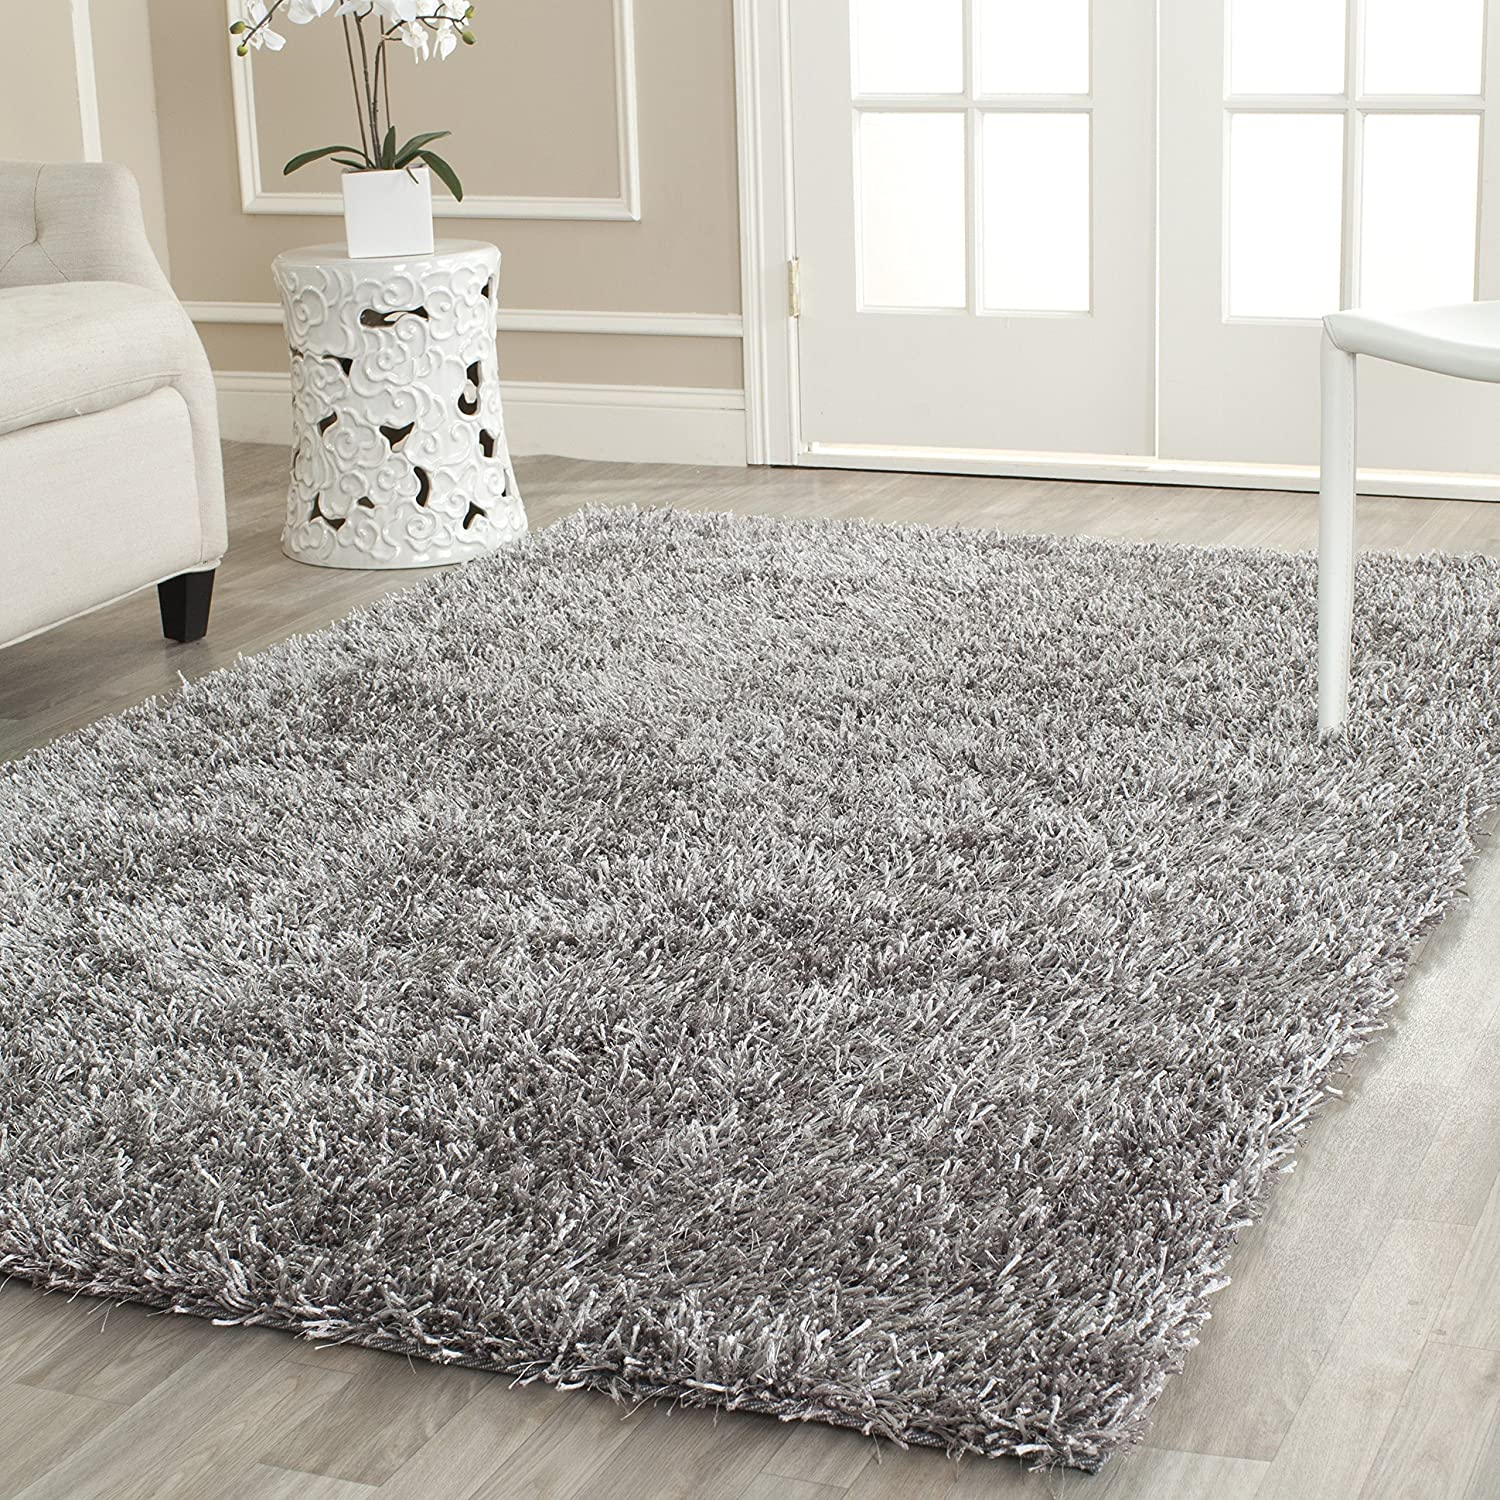 full stunning grey large cheap purple flooring area rich and gray home wonderful trellis dark your depot bring of awesome rug size silken shag tradi rugs